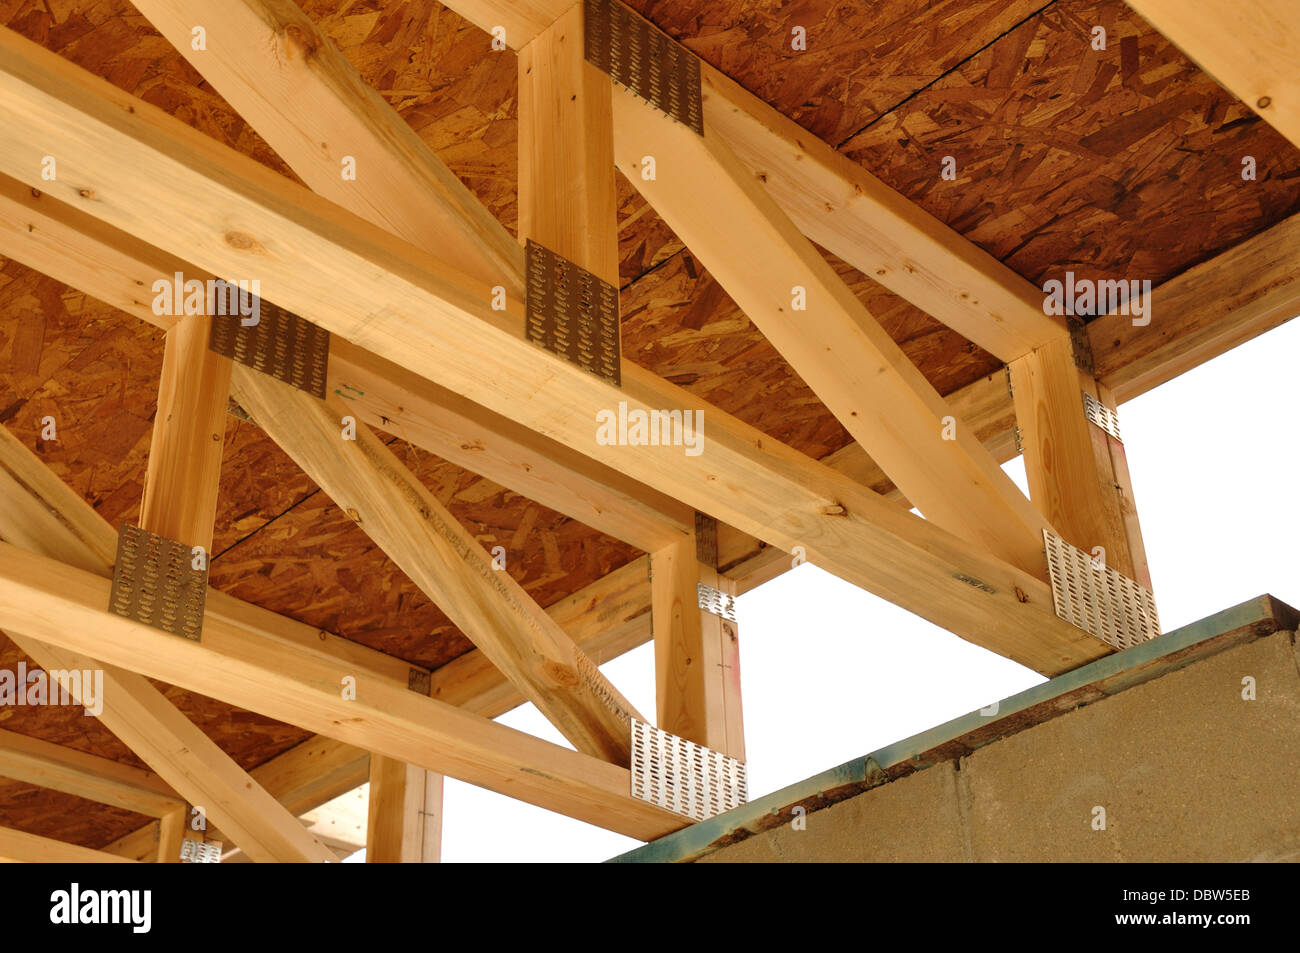 floor / ceiling joists / trusses in a new house under construction